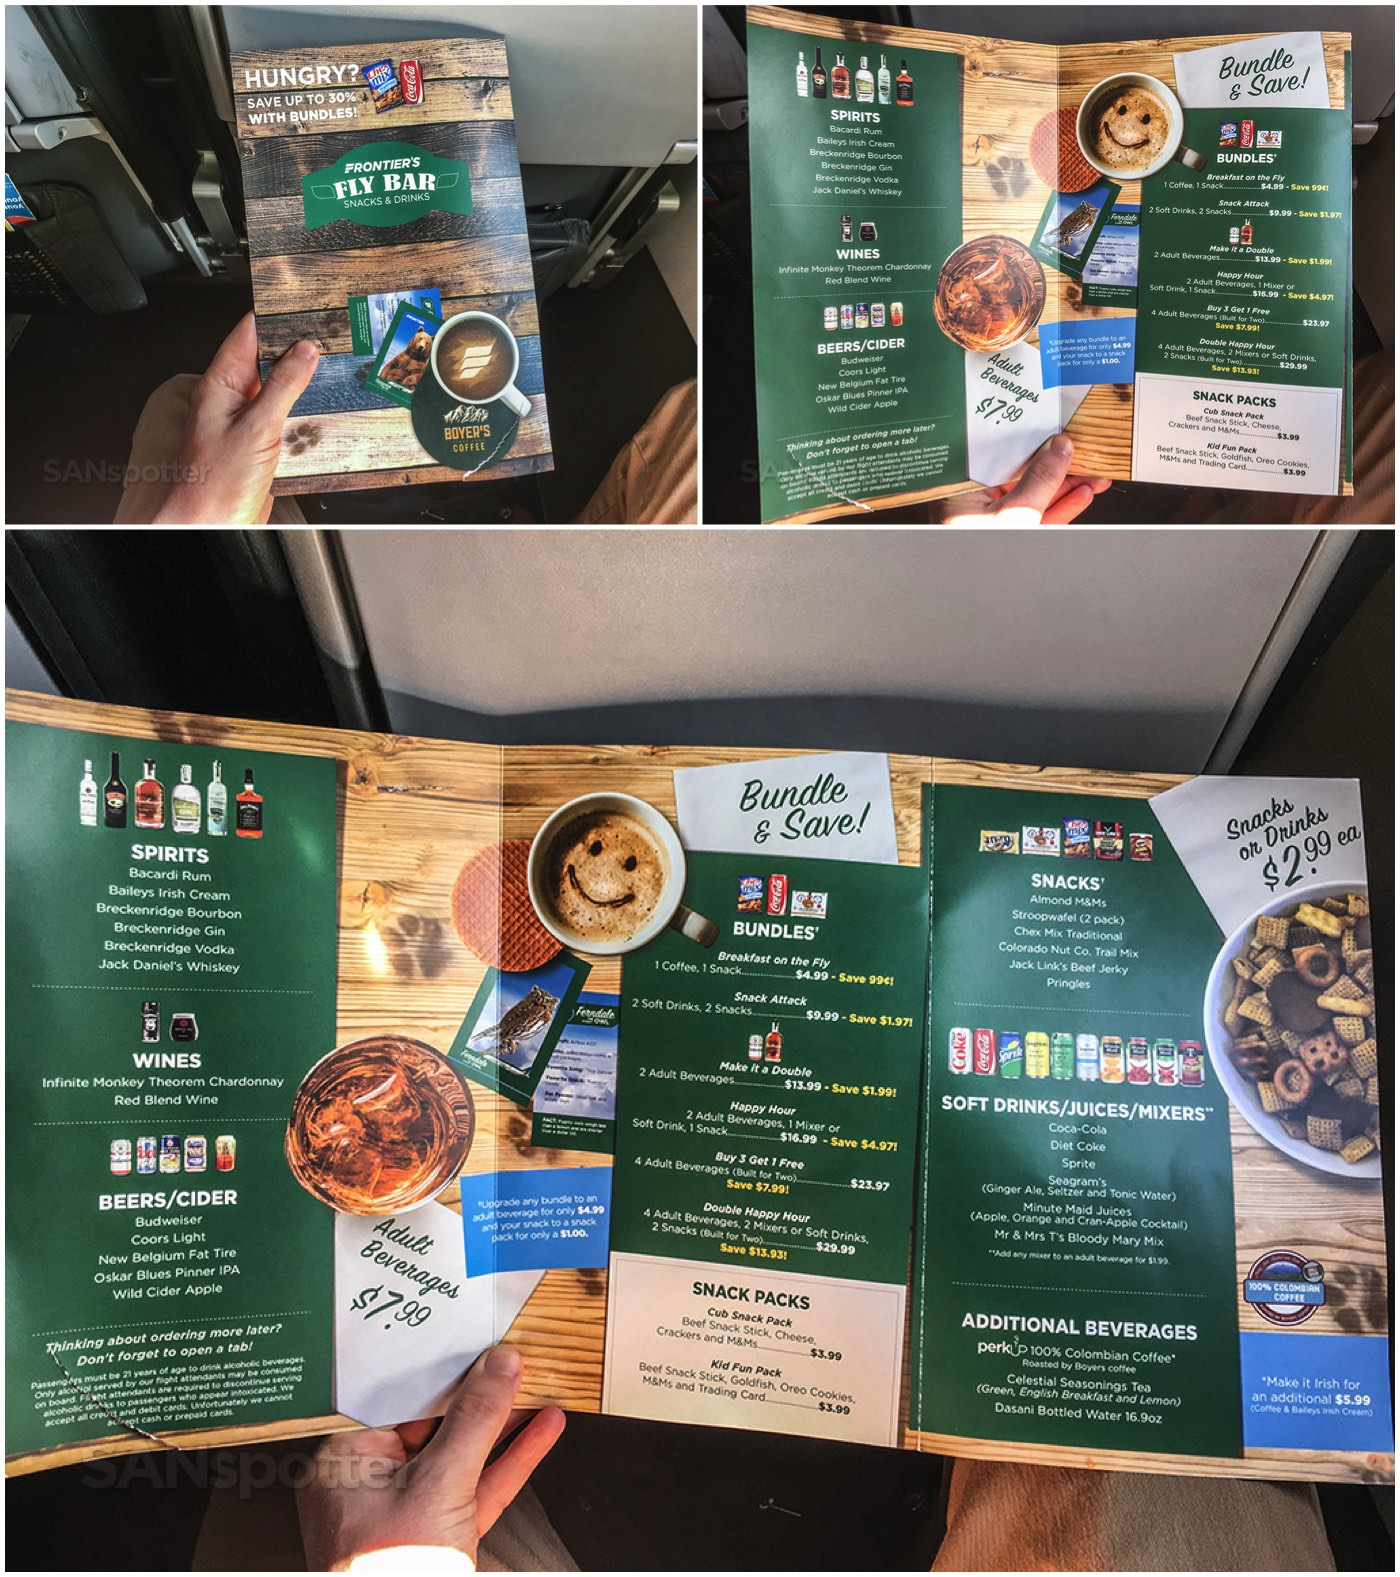 Frontier Airlines snack menu